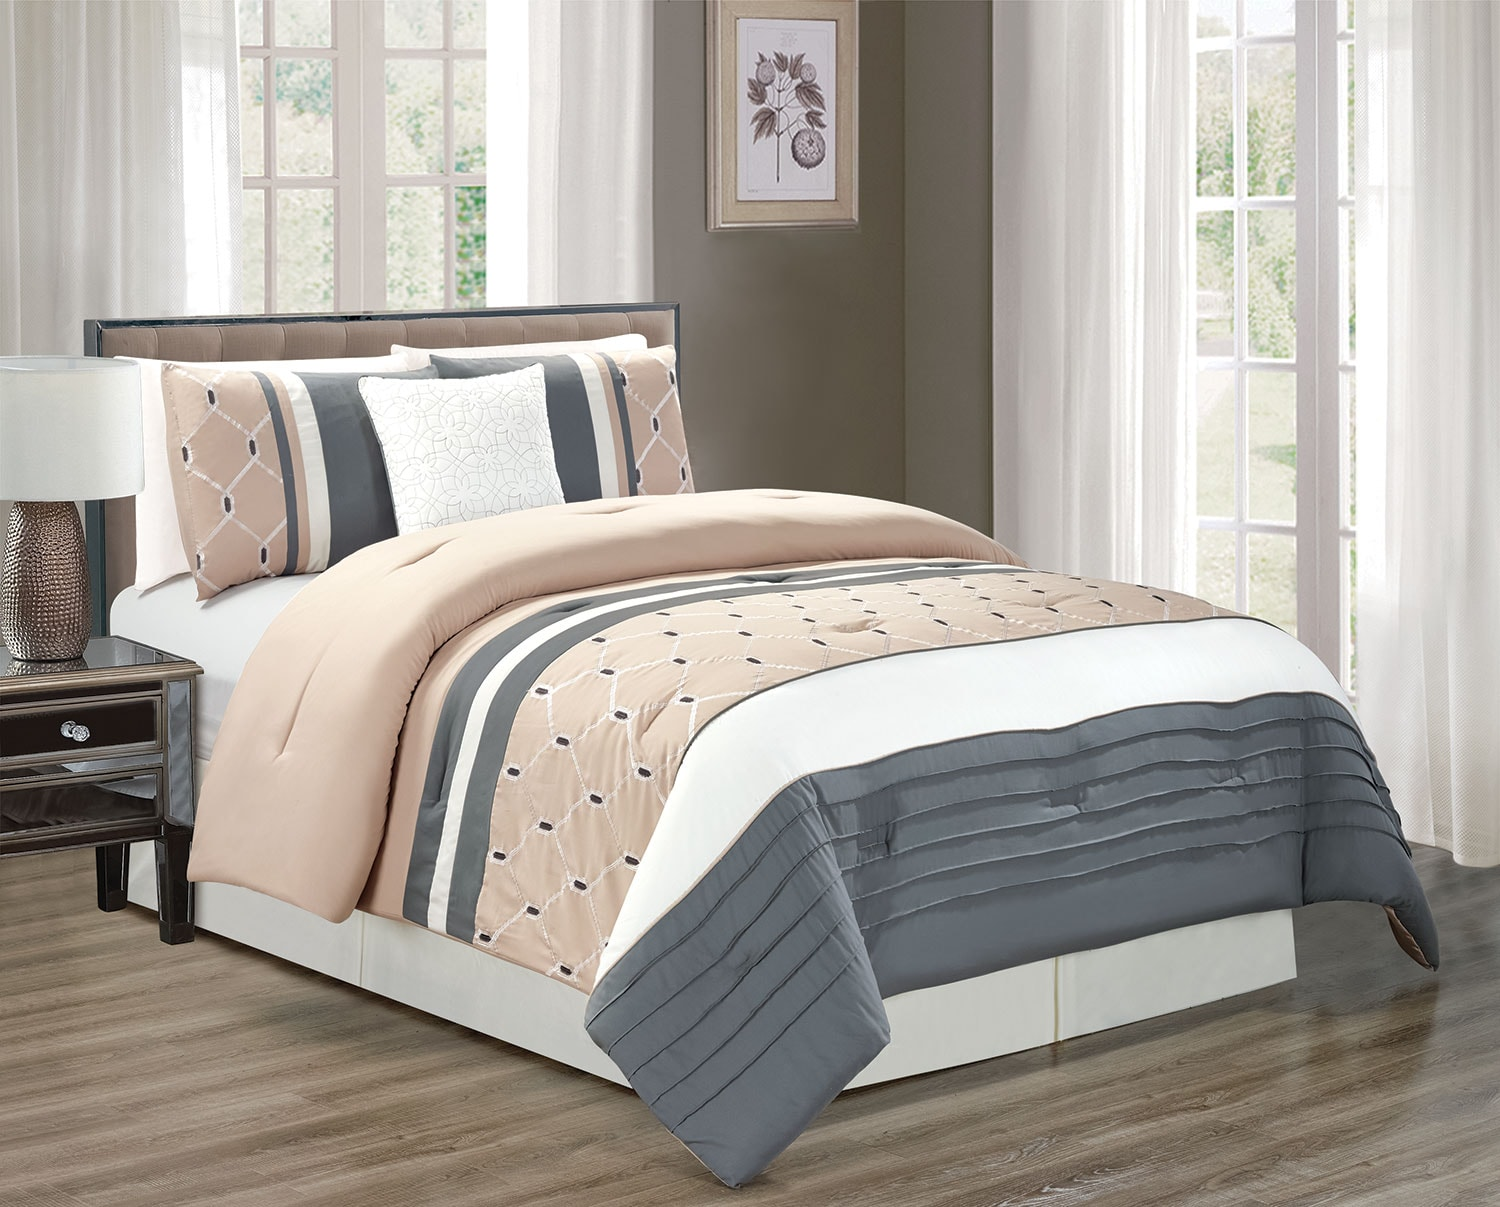 Weston 4-Piece Queen Comforter Set